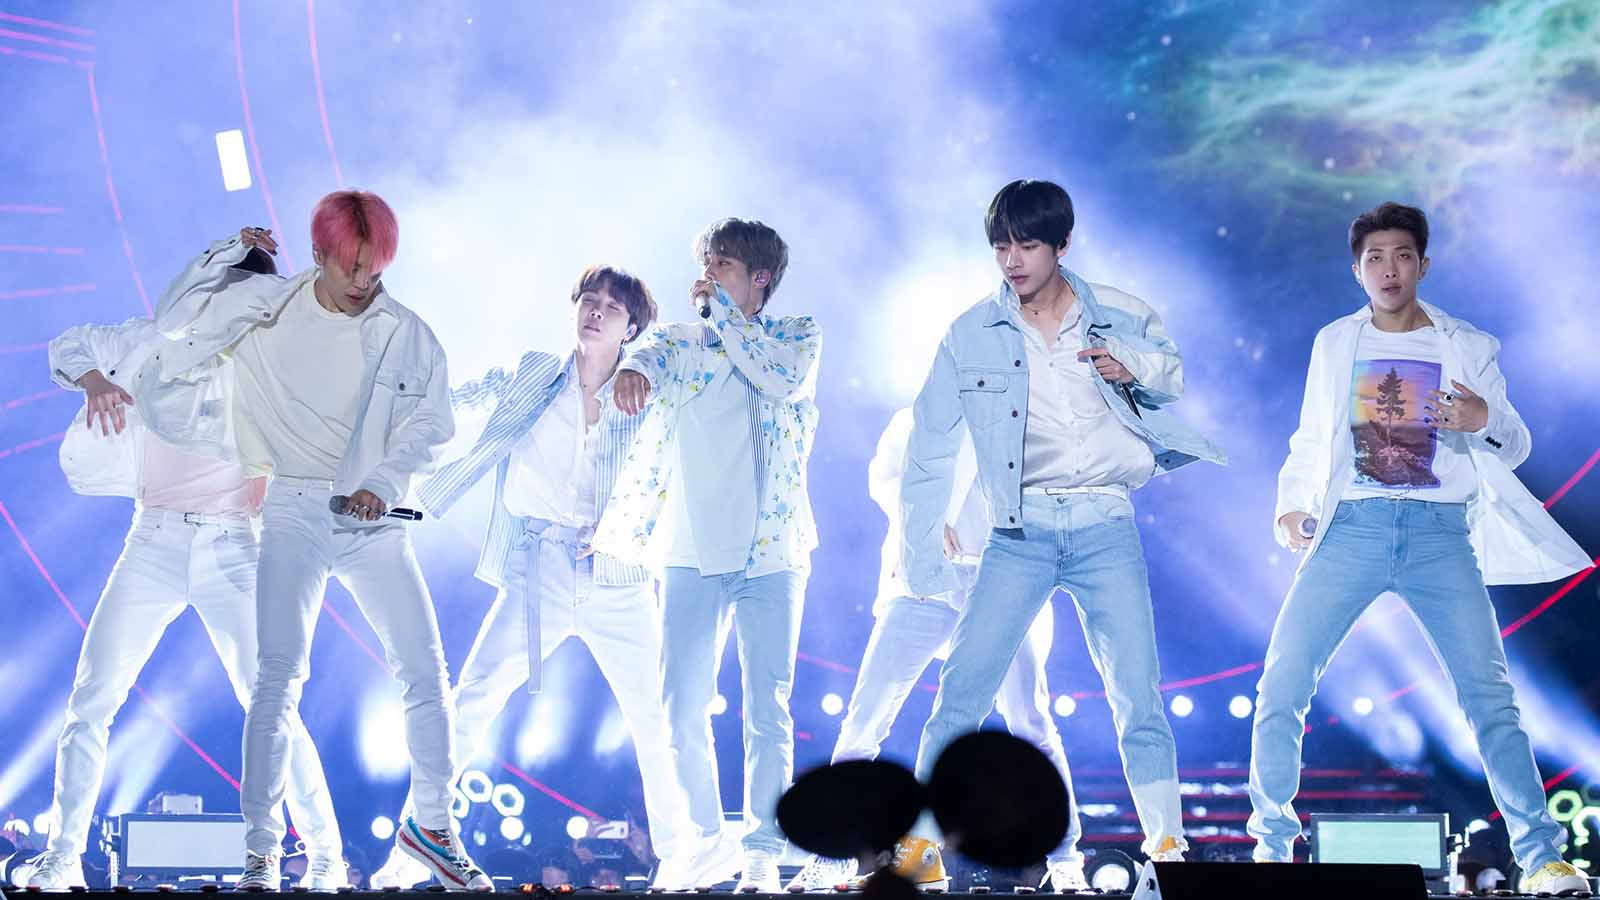 BTS has been a record breaking band since their start, but member V is just as much of record breaker. What strange record did he break on Twitter?